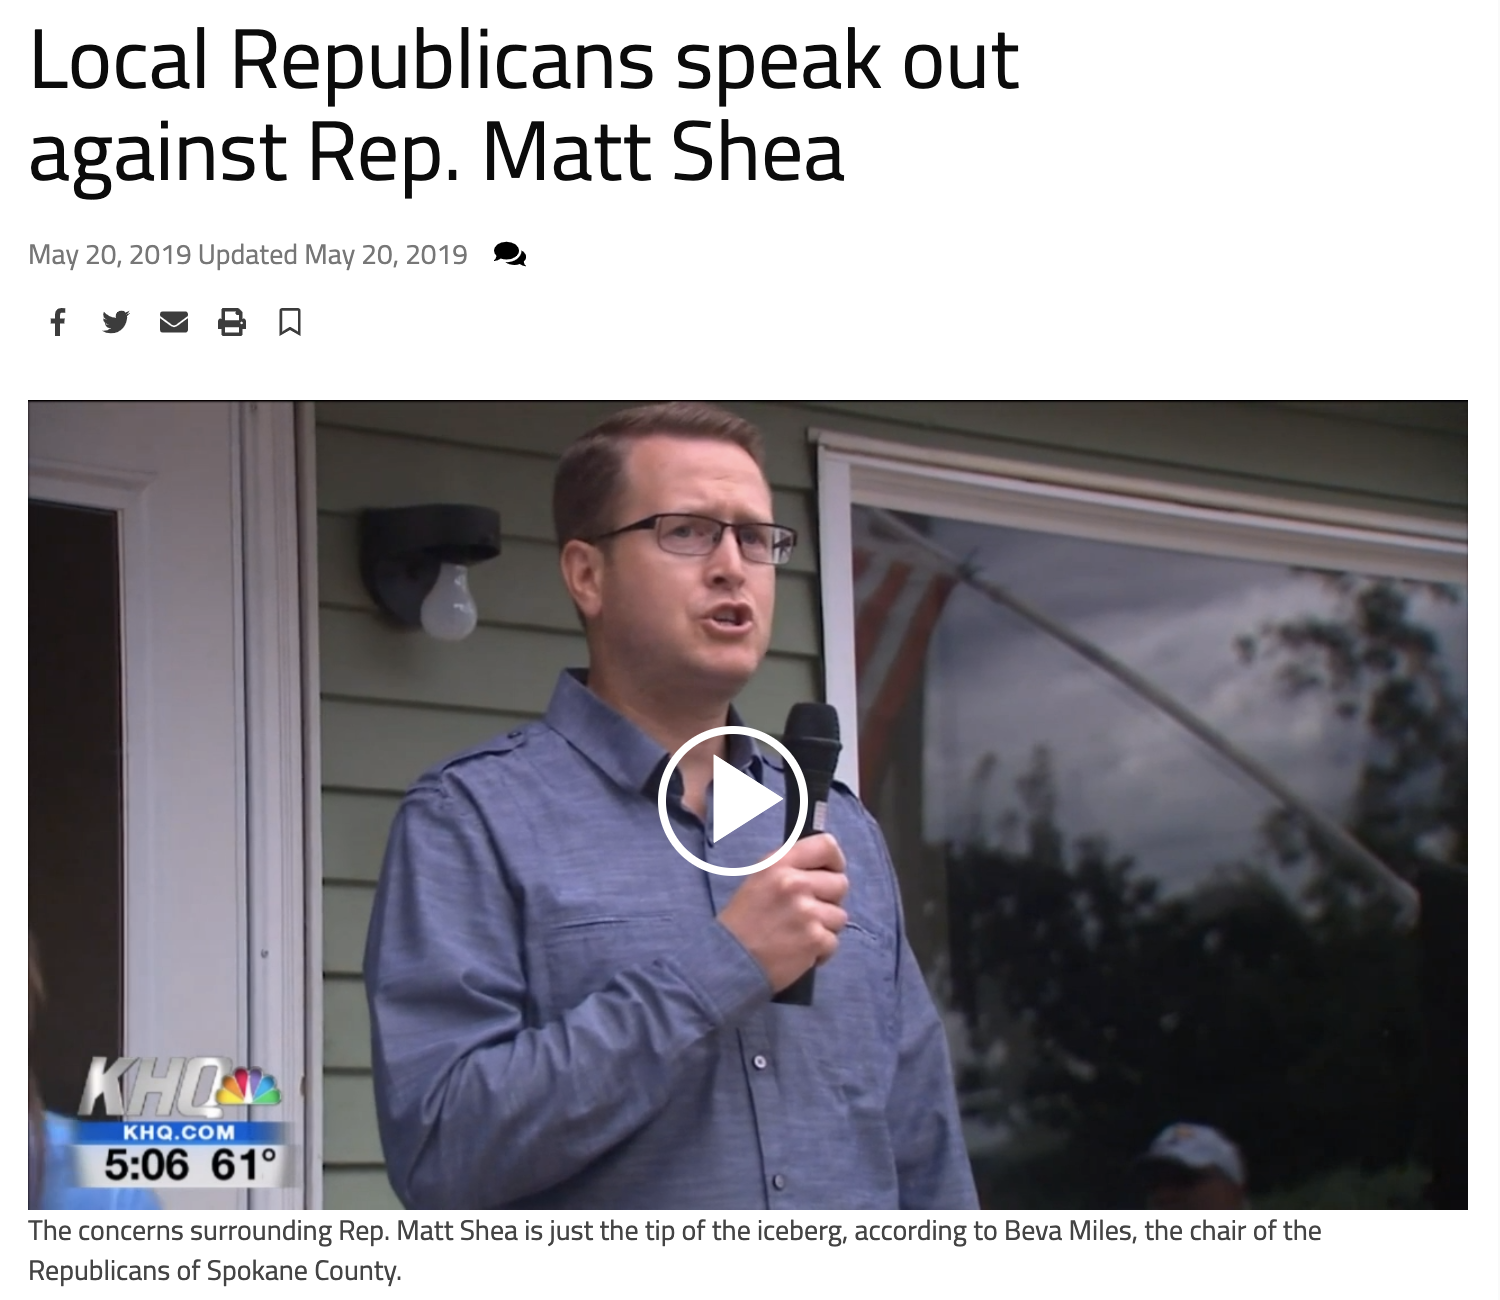 She and many other local Republicans are disagreeing with Rep. Matt Shea, but Miles said they've distanced themselves from Shea for almost a decade - much before   the recent allegations surrounding the Spokane Valley representative.    According to Miles, Spokane County's GOP is being heavily influenced with Christian extremism, which includes the same ideals laid out in   Rep. Shea's leaked biblical manifesto.         CLICK HERE FOR FULL ARTICLE